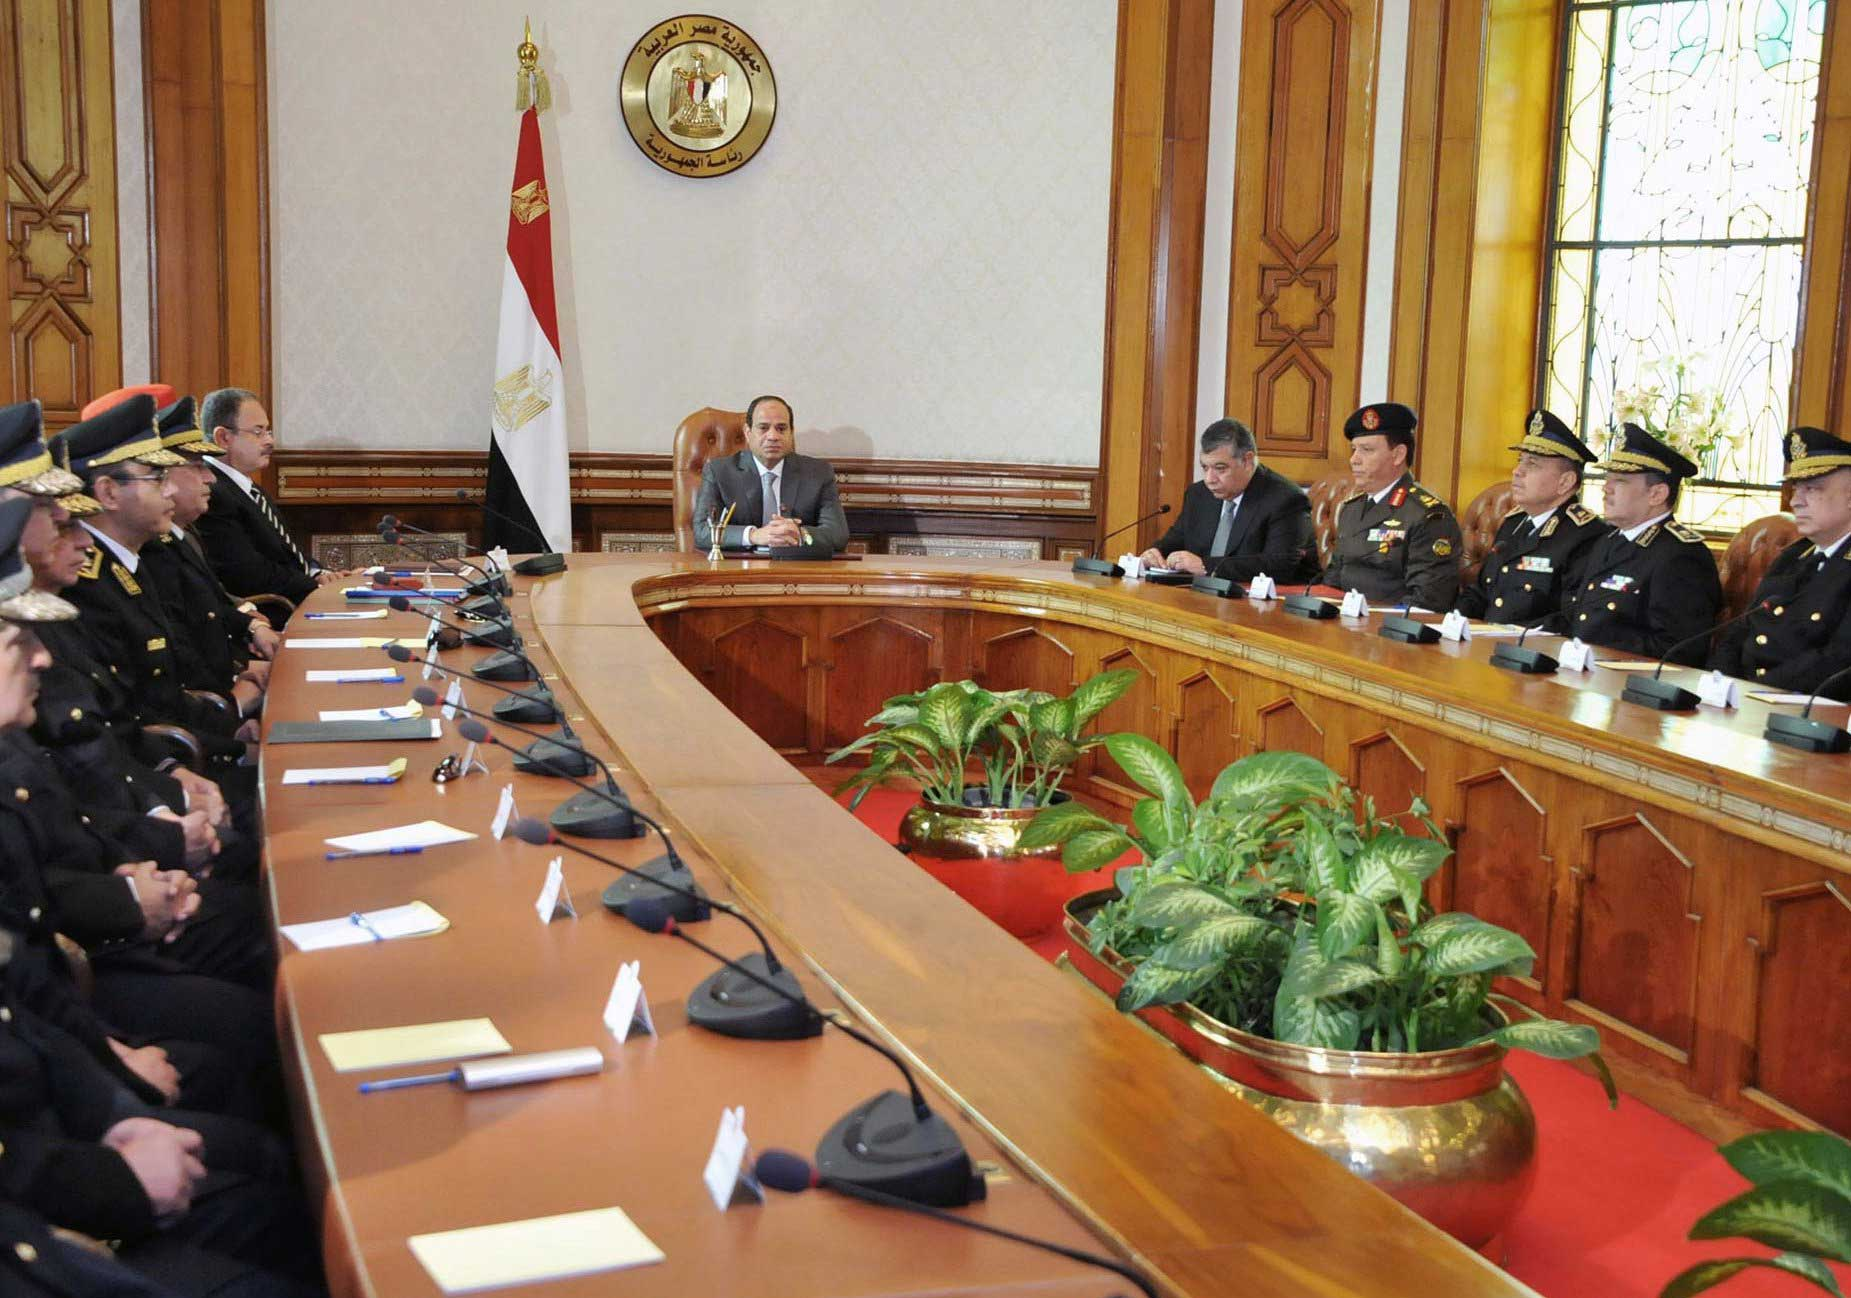 President Abdul Fattah al-Sisi meeting with his Interior Minister Magdy Abdel Ghaffar, left, the chief of intelligence and military officials in Cairo on April 16, 2015